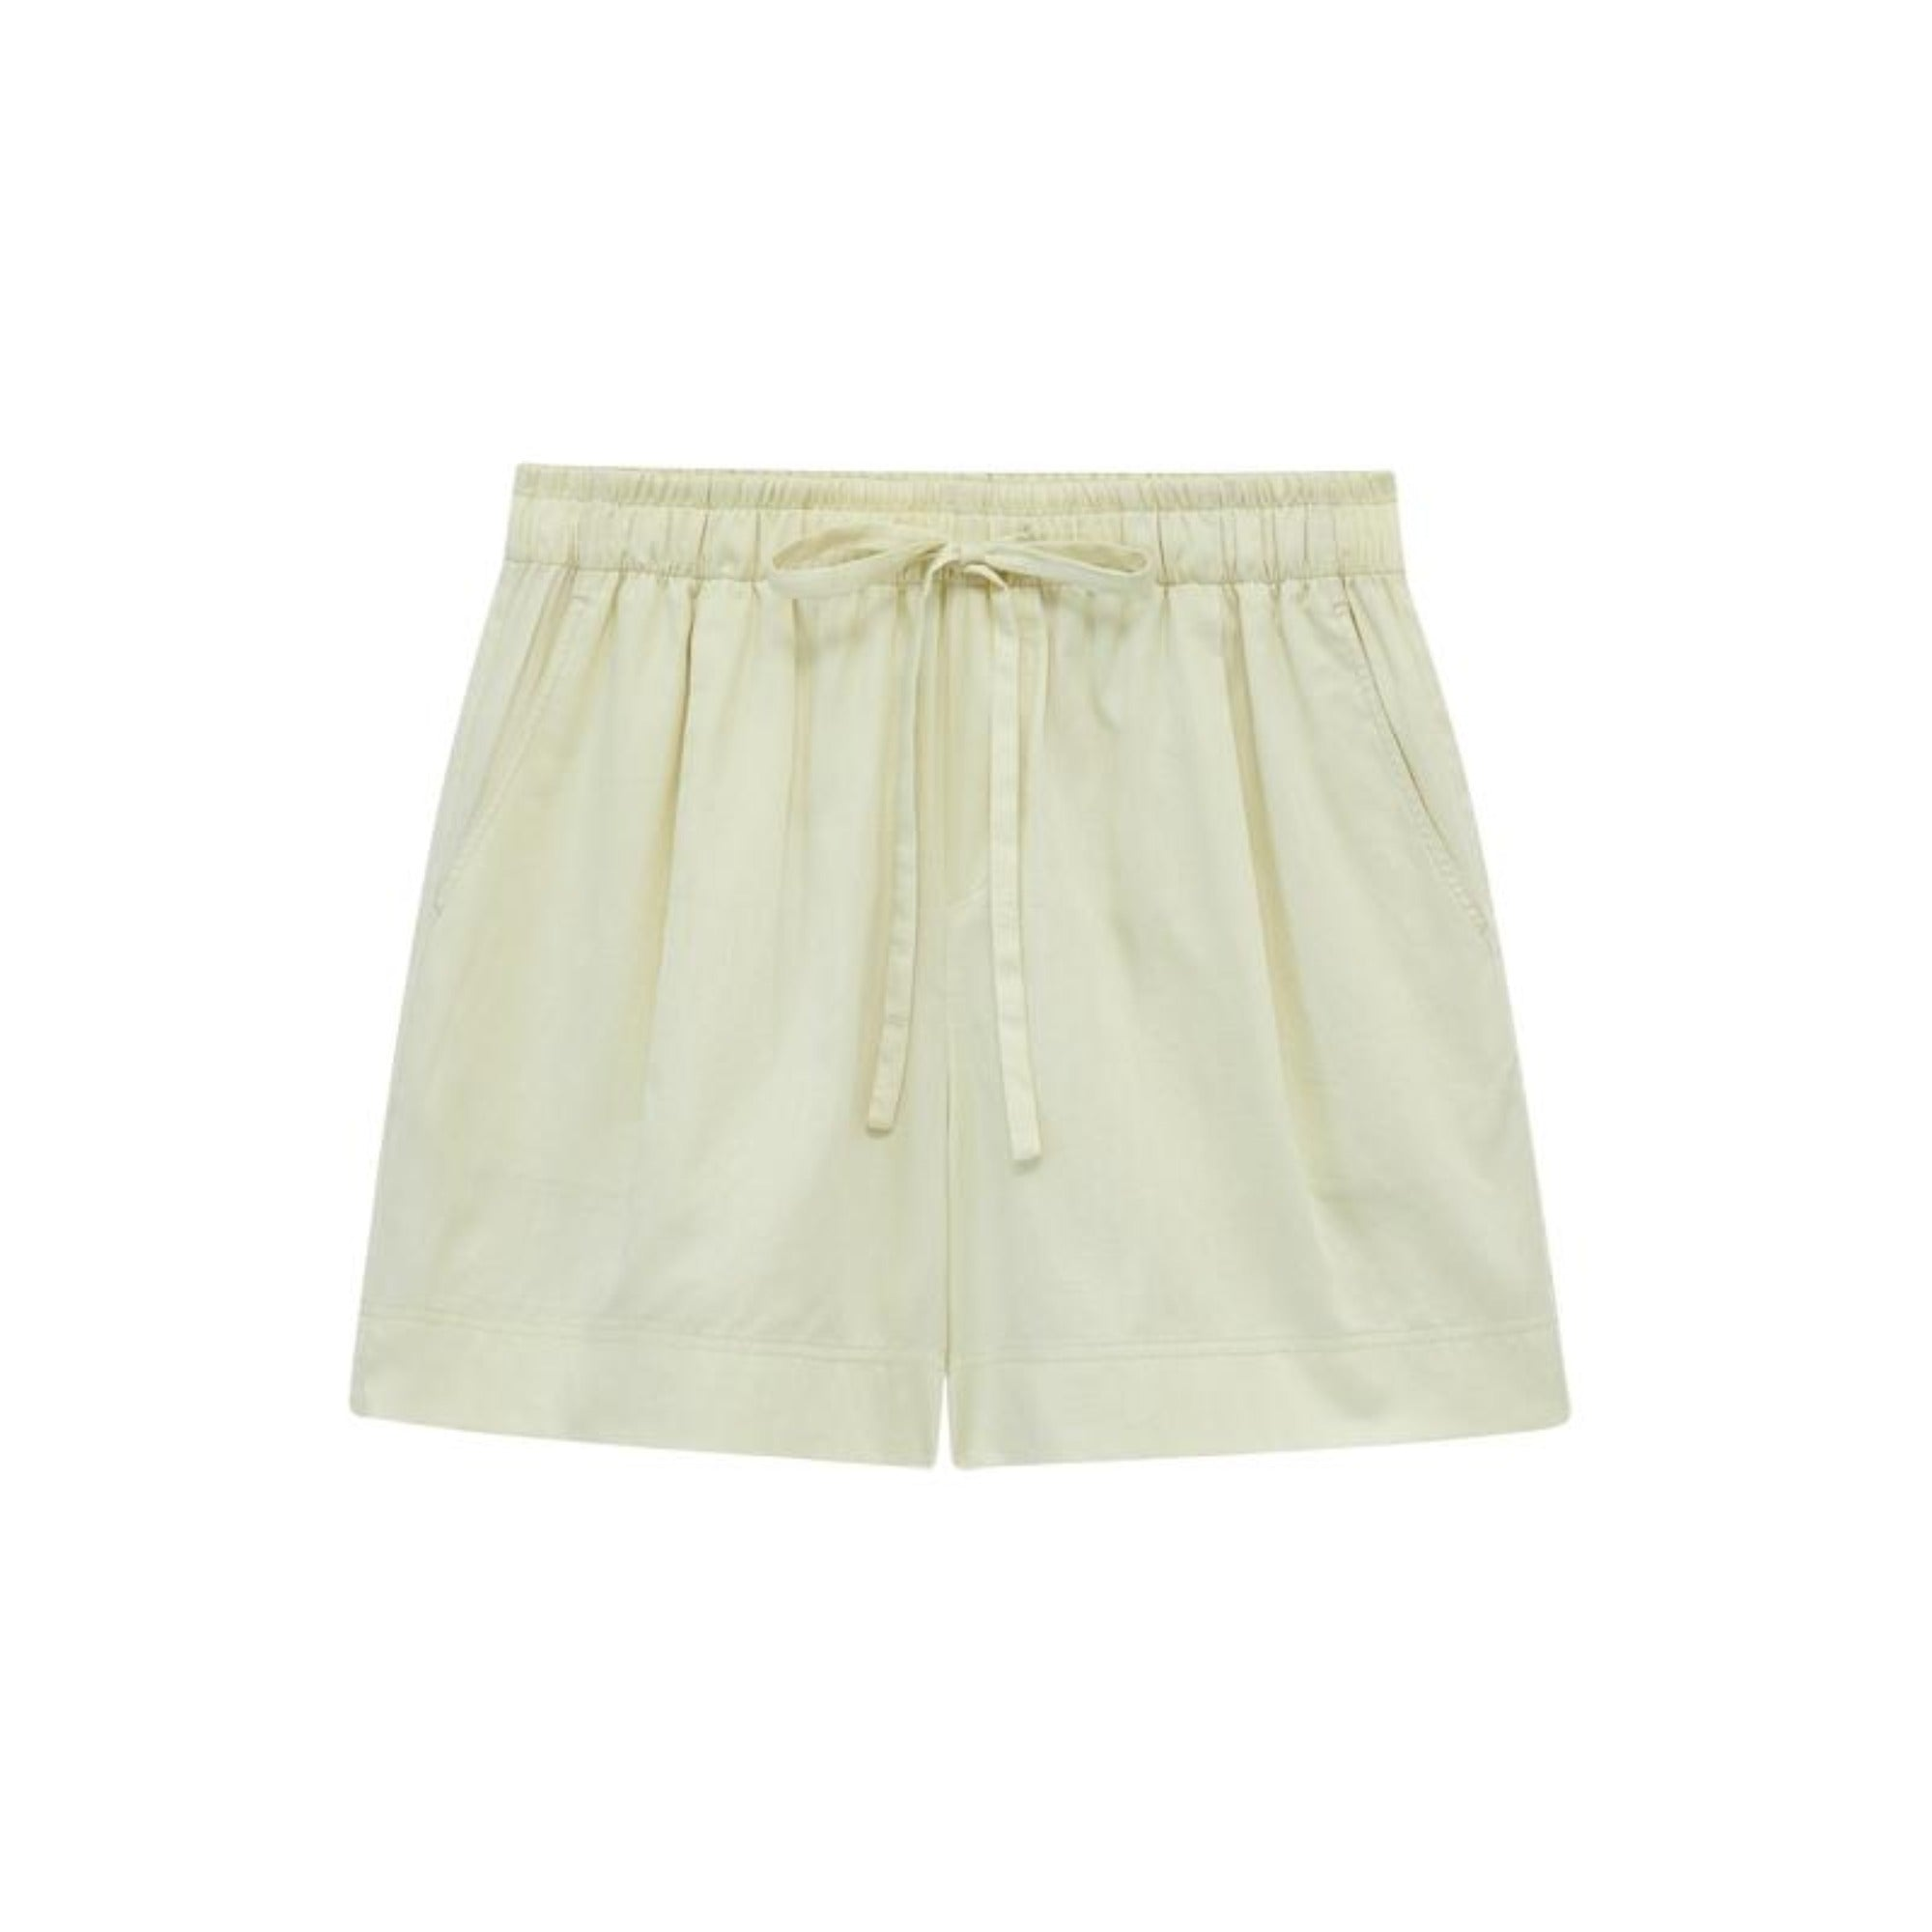 NEIWAI Cotton Sleep Shorts in Mojito